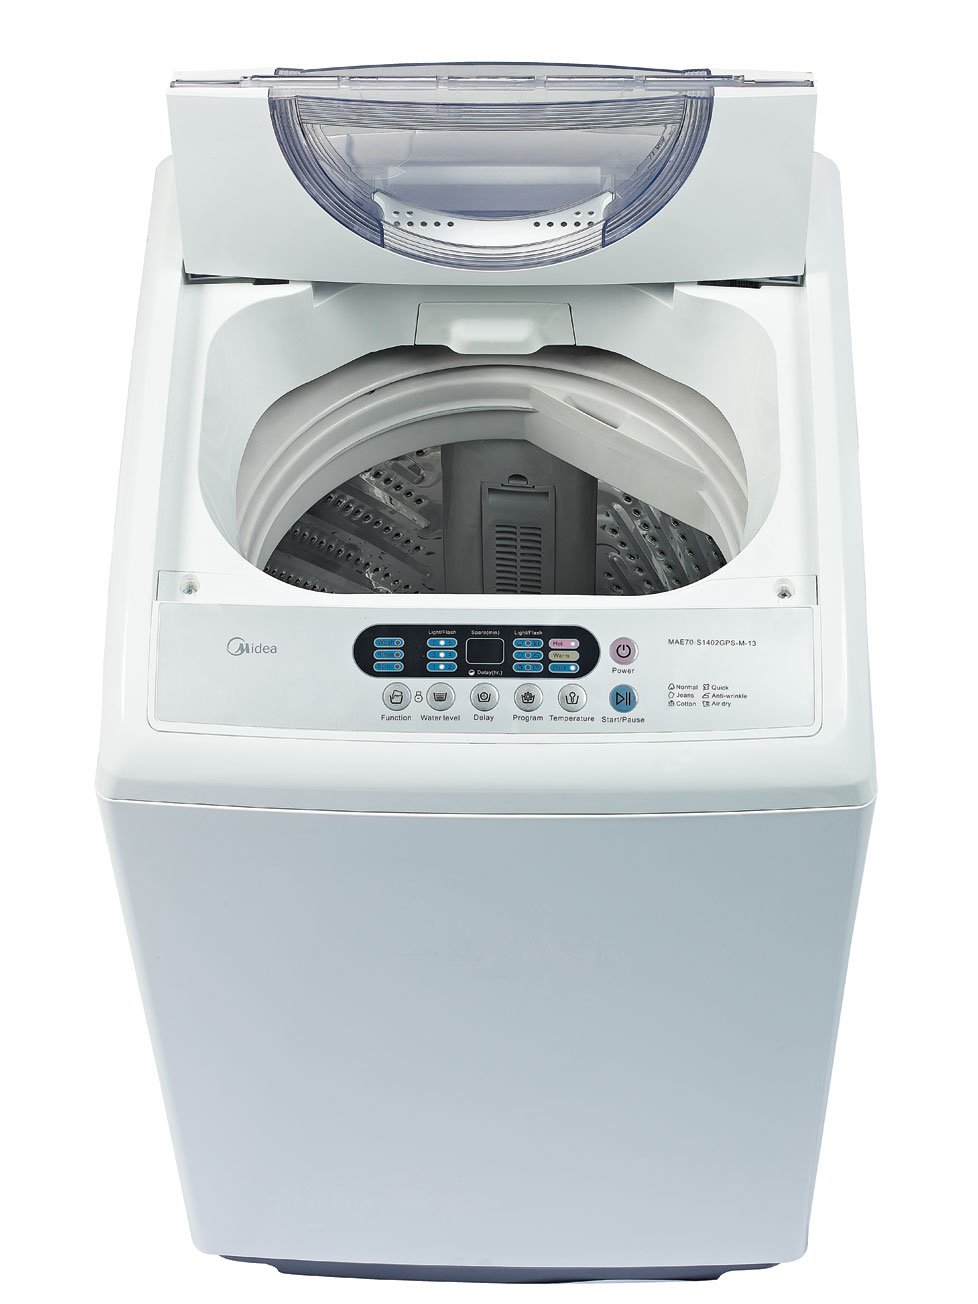 Best top load washers on the market - Amazon Com Midea 3kg Compact Portable Washing Machine Washer Mar30 P0501gp 0 9 Cu Ft 6 6 Lbs Appliances